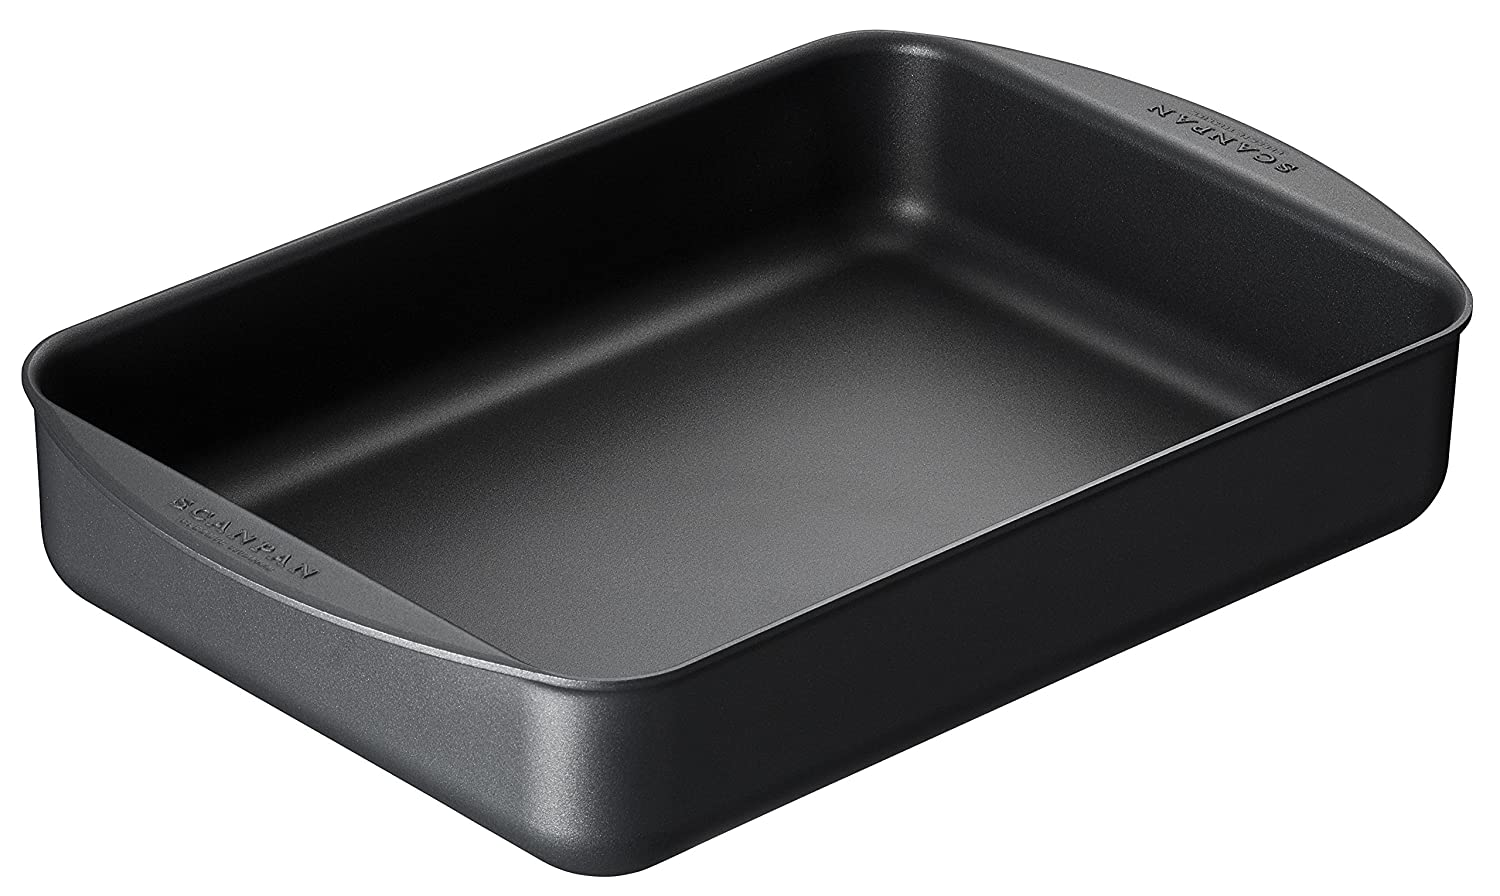 Scanpan Classic Roasting Pan, 3-quart/14-inch by 9-inch 30321200